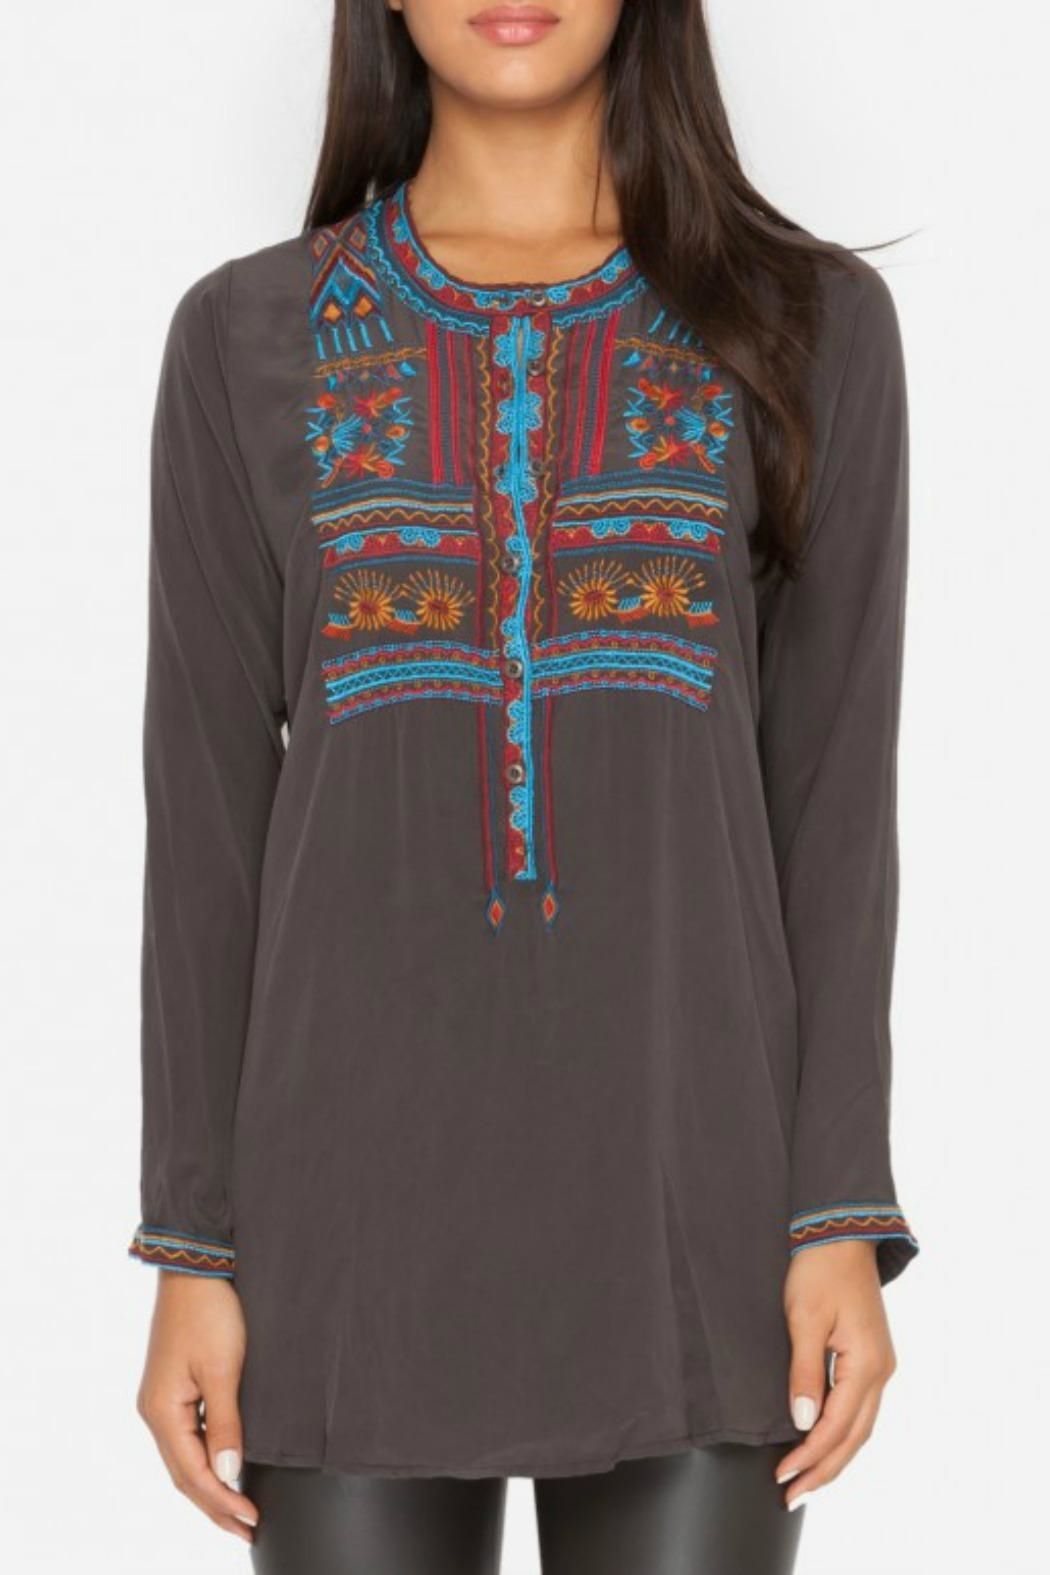 Johnny Was Grey Silk Embroidered Blouse - Main Image